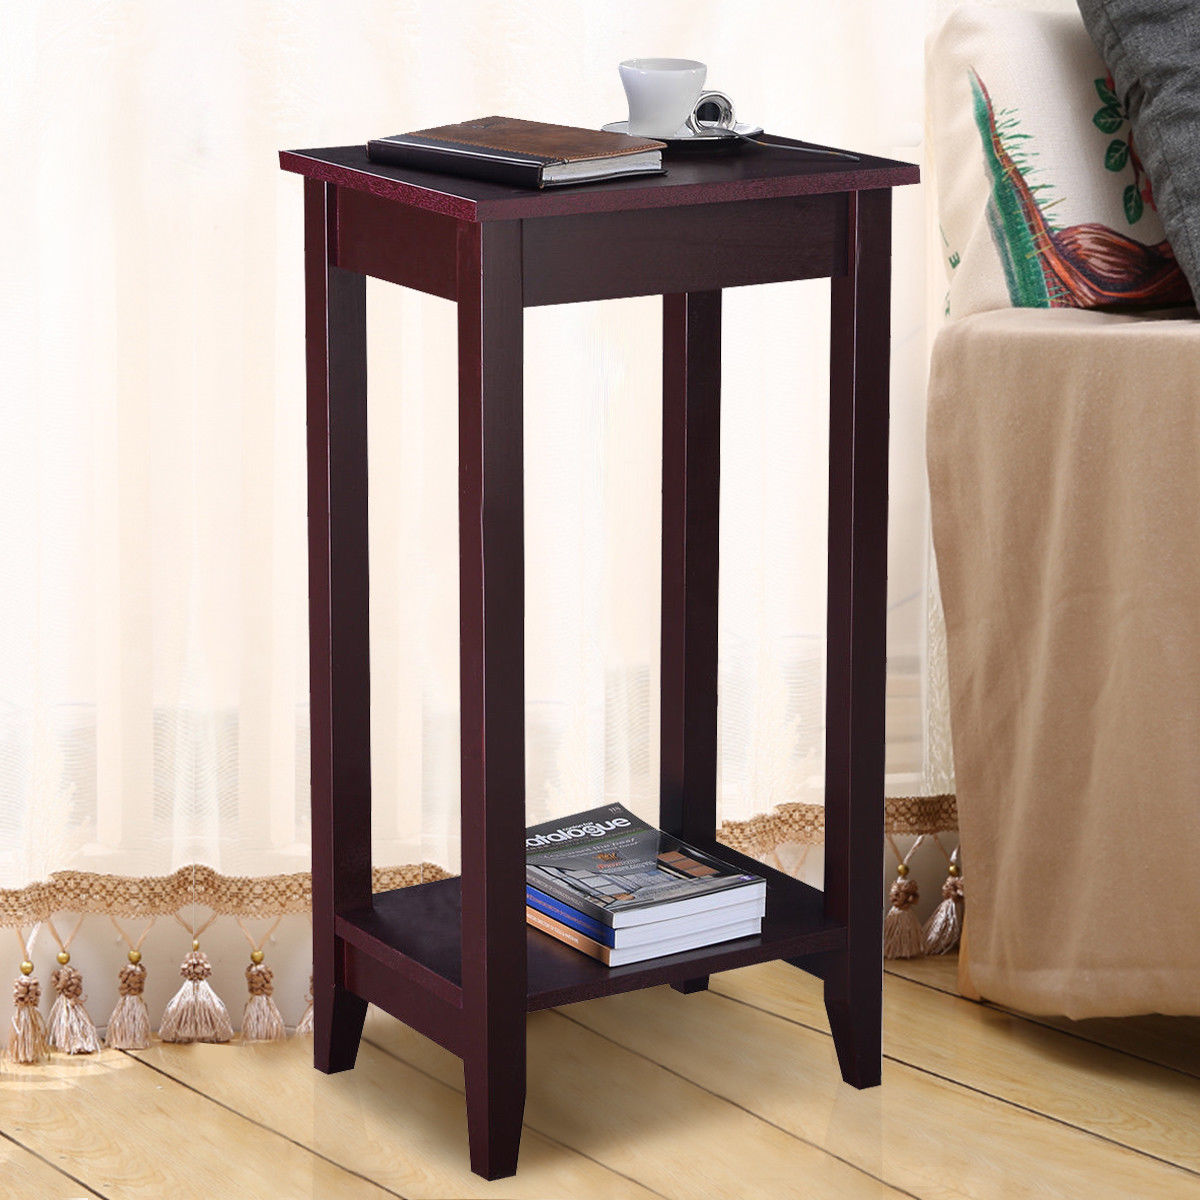 Costway Tall End Table Coffee Stand Night Side Nightstand Accent Furniture Brown (1) by Costway